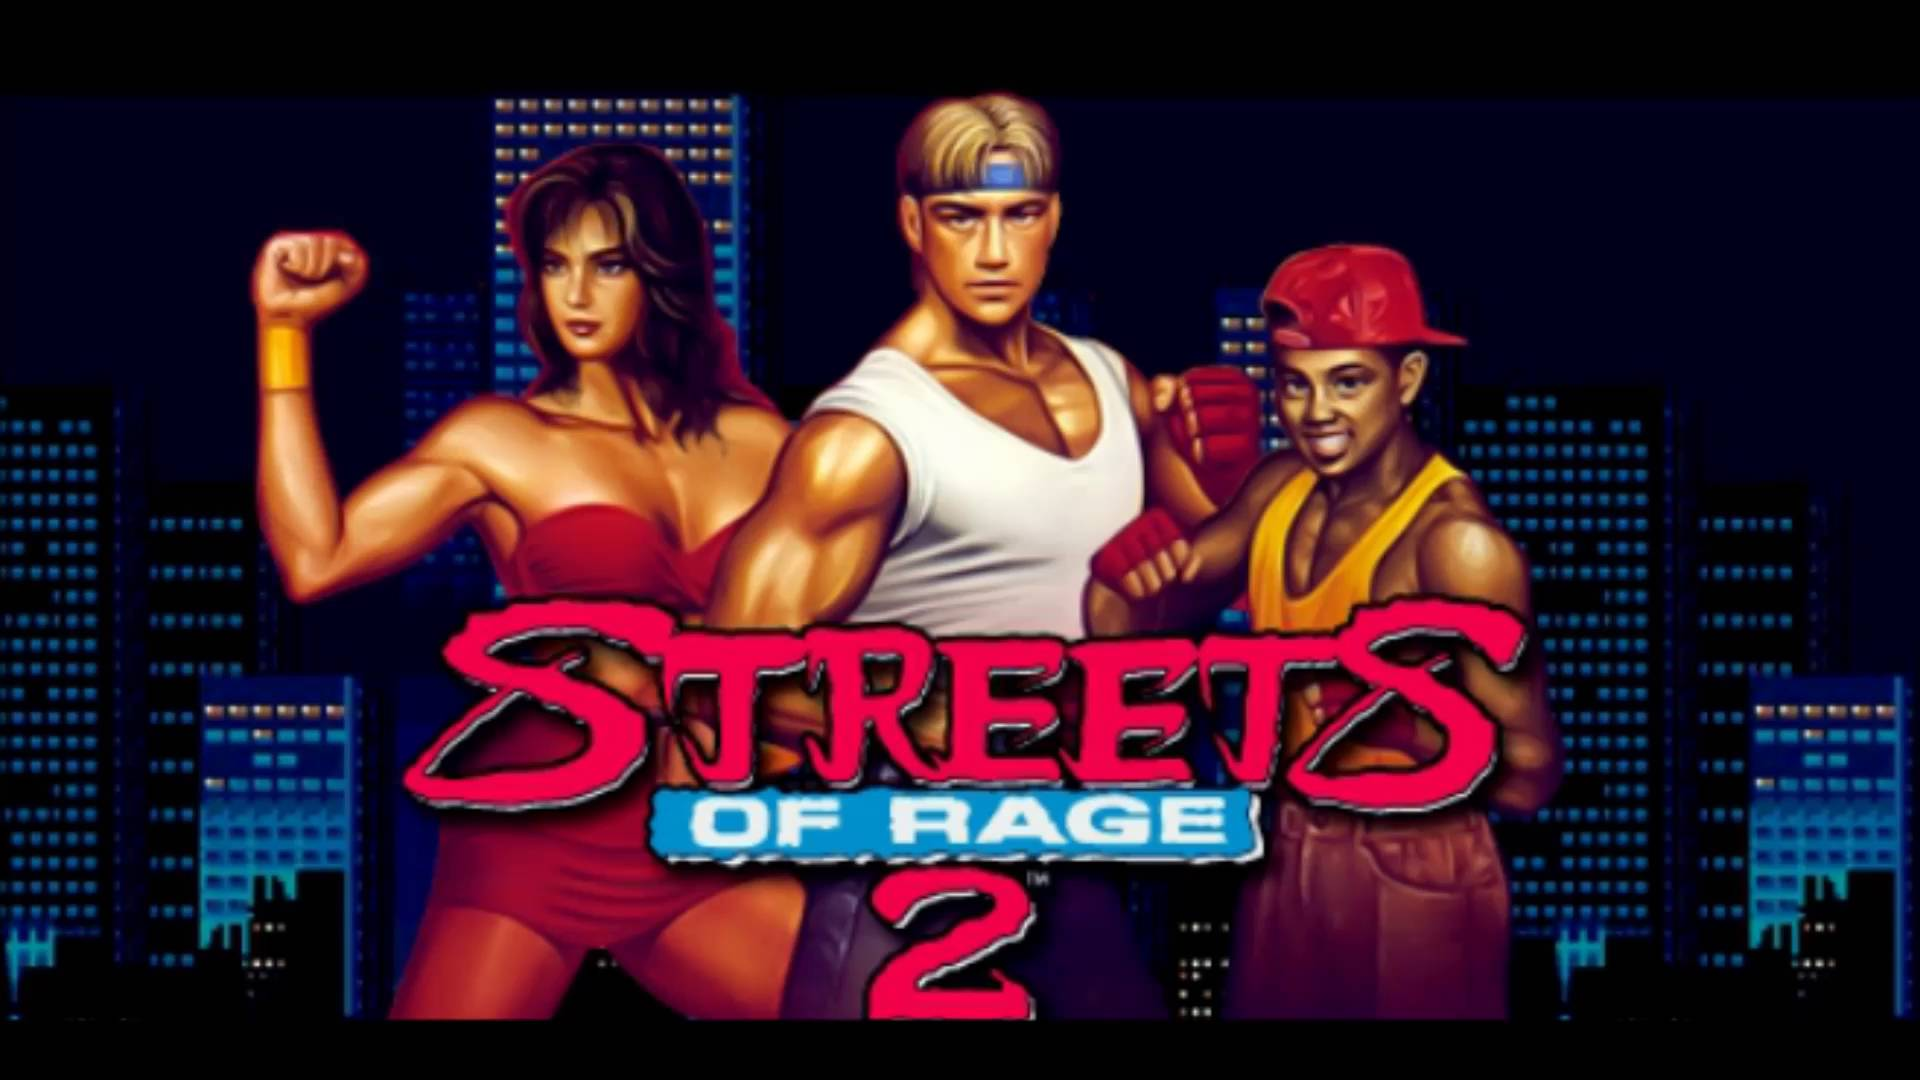 Scarica Street of Rage 2 per Android [Street Fighting Game] 1